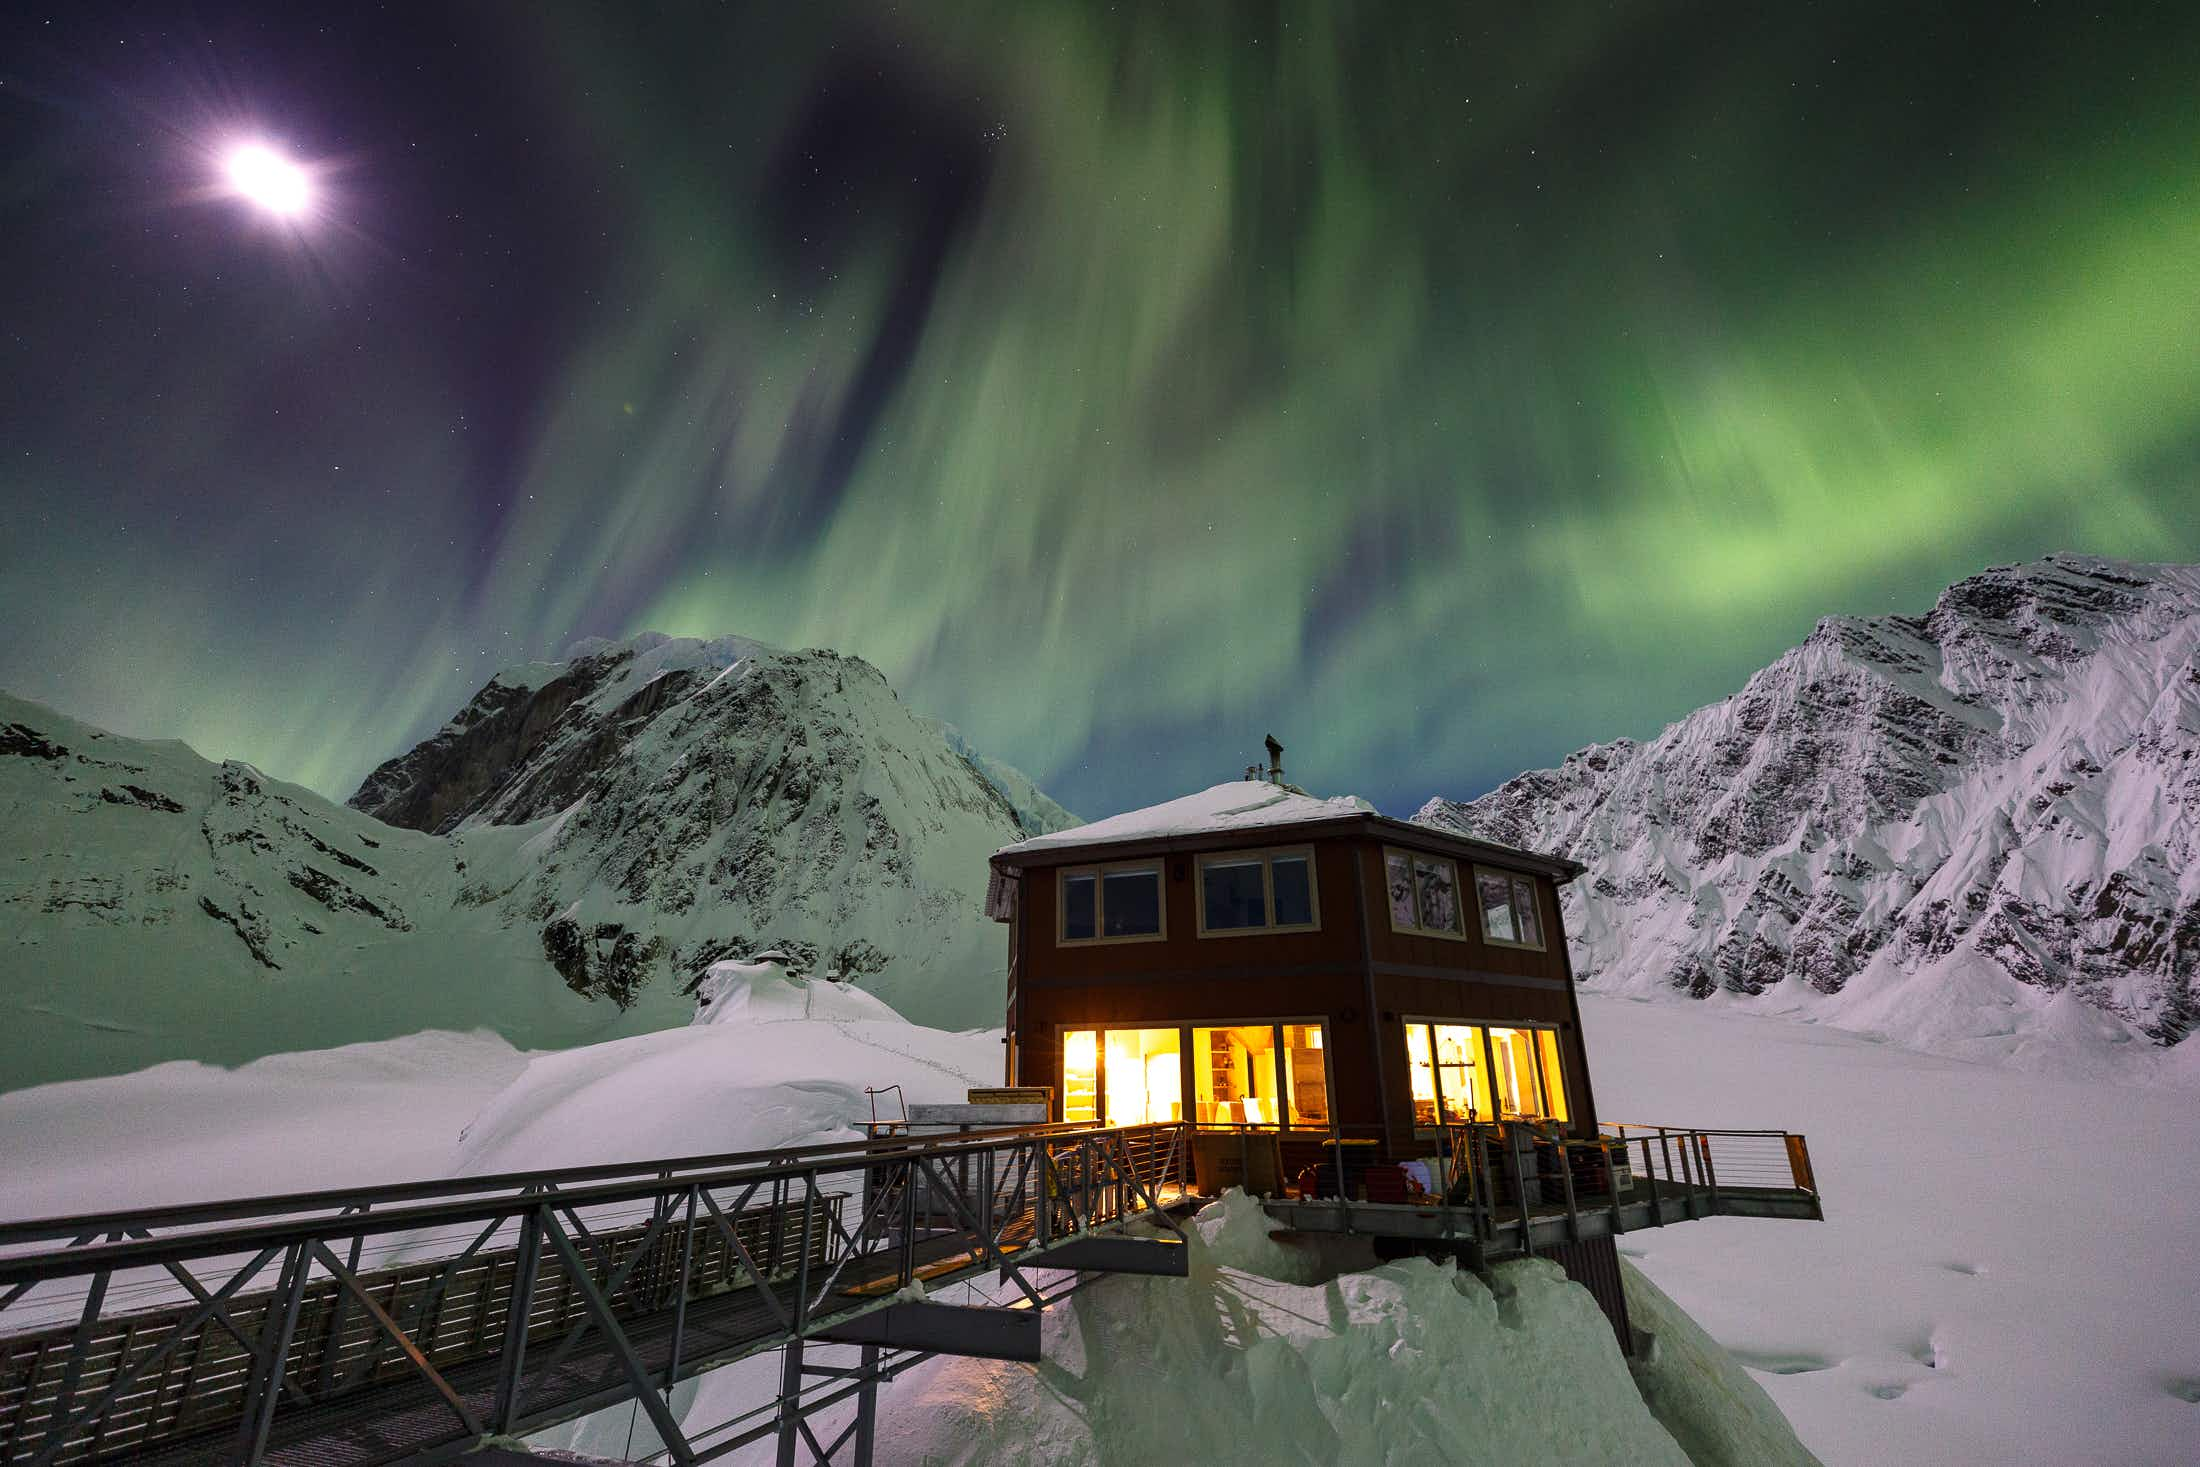 Watch the Northern Lights from this luxury chalet on an Alaskan glacier